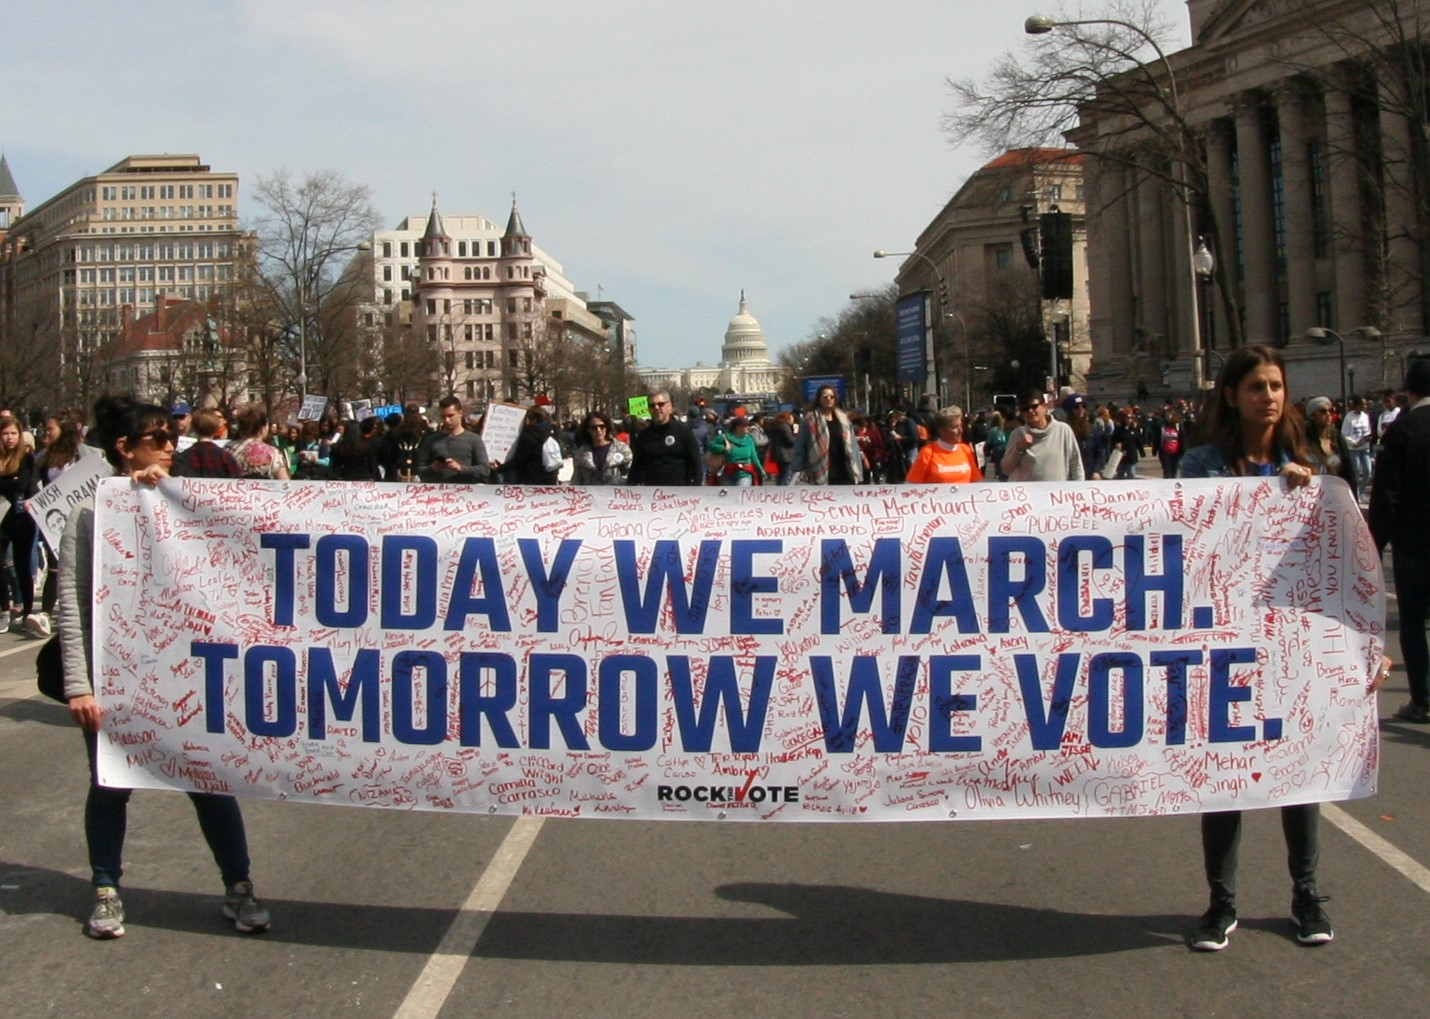 Tomorrow_We_Vote_(March_For_Our_Lives_rally_in_DC)_(41053107042)